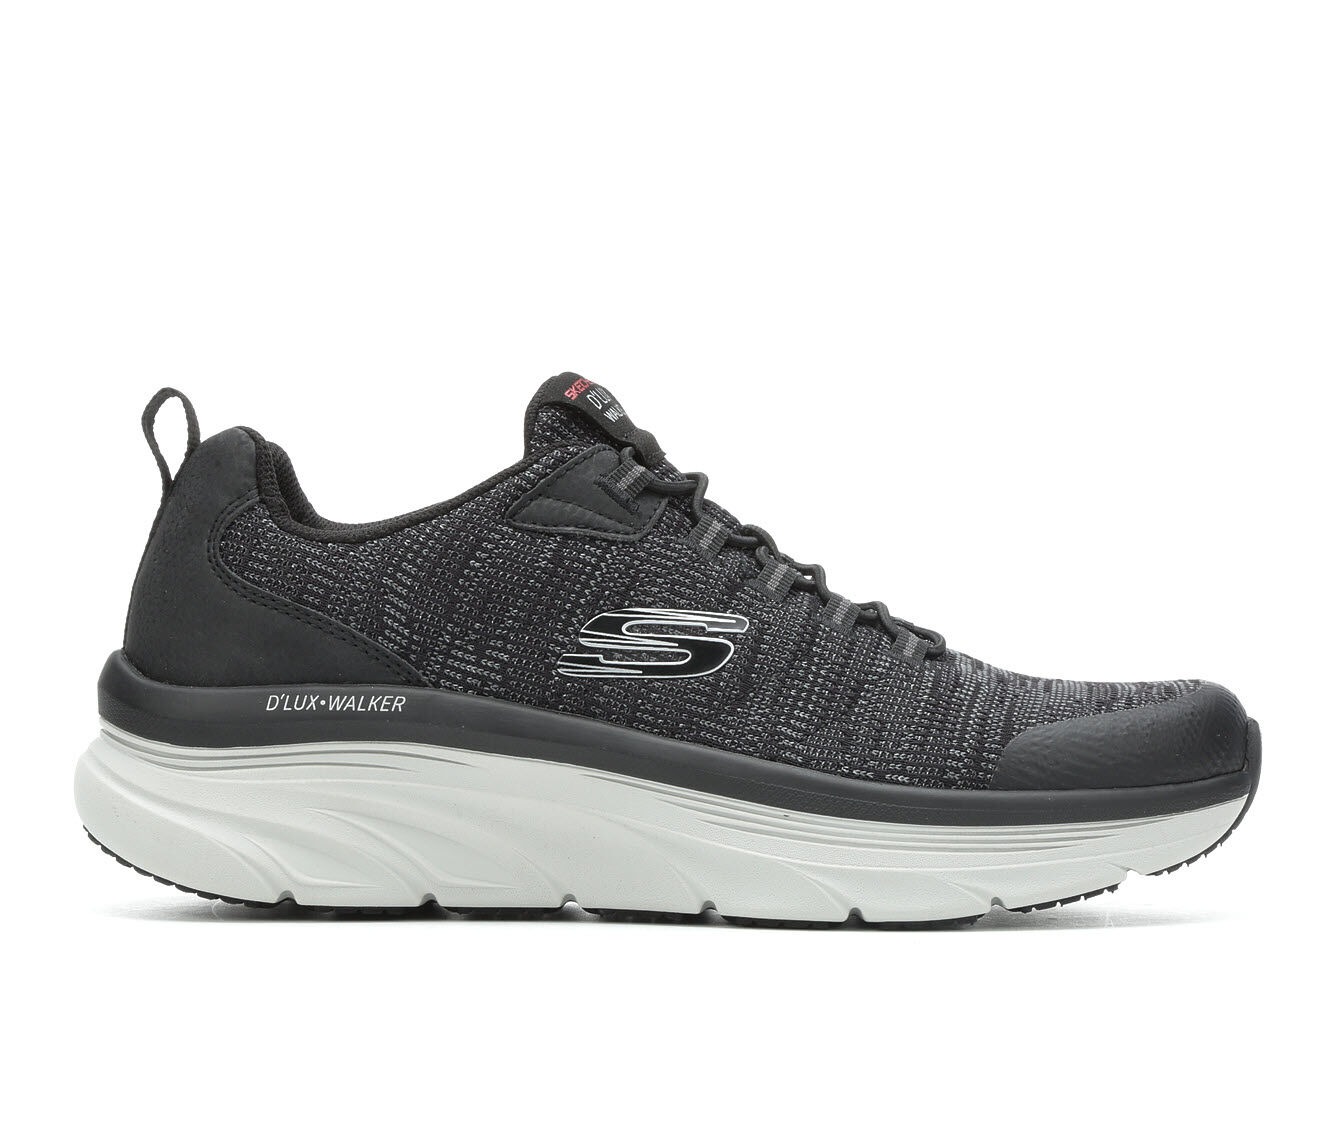 Skechers Shoes and Sneakers | Shoe Carnival